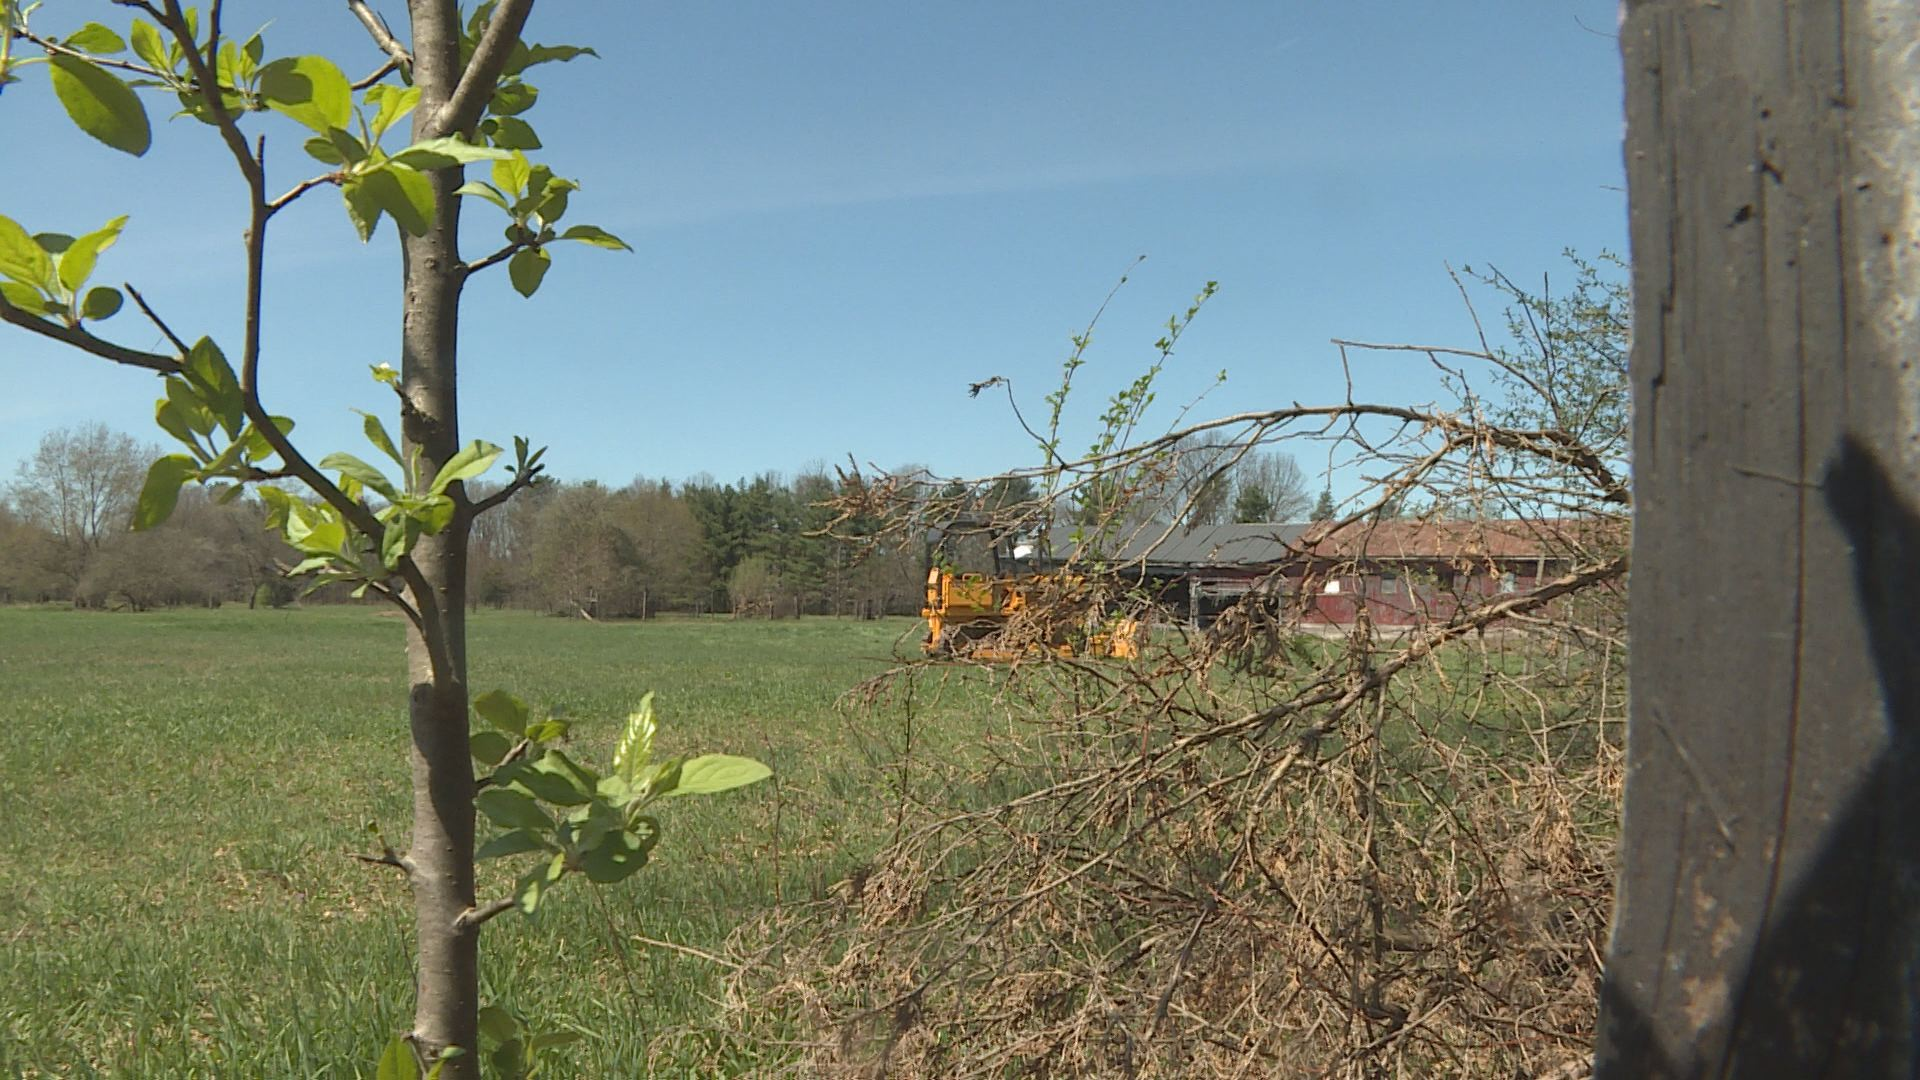 An investigation into a body found in this field is ongoing. // WSBT 22 photo